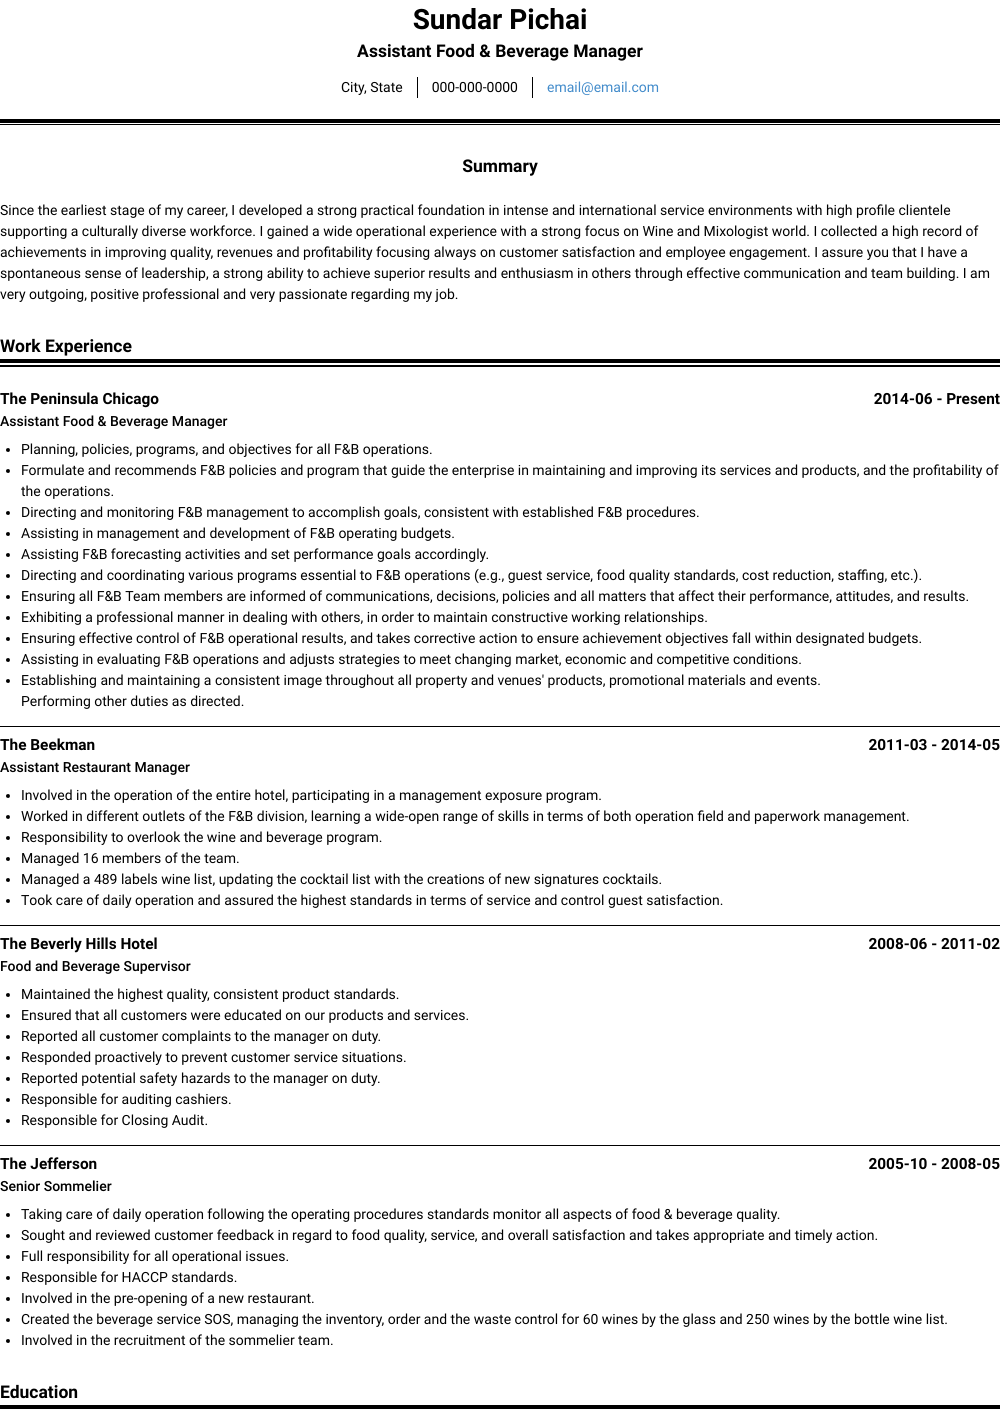 Assistant Food & Beverage Manager Resume Sample and Template